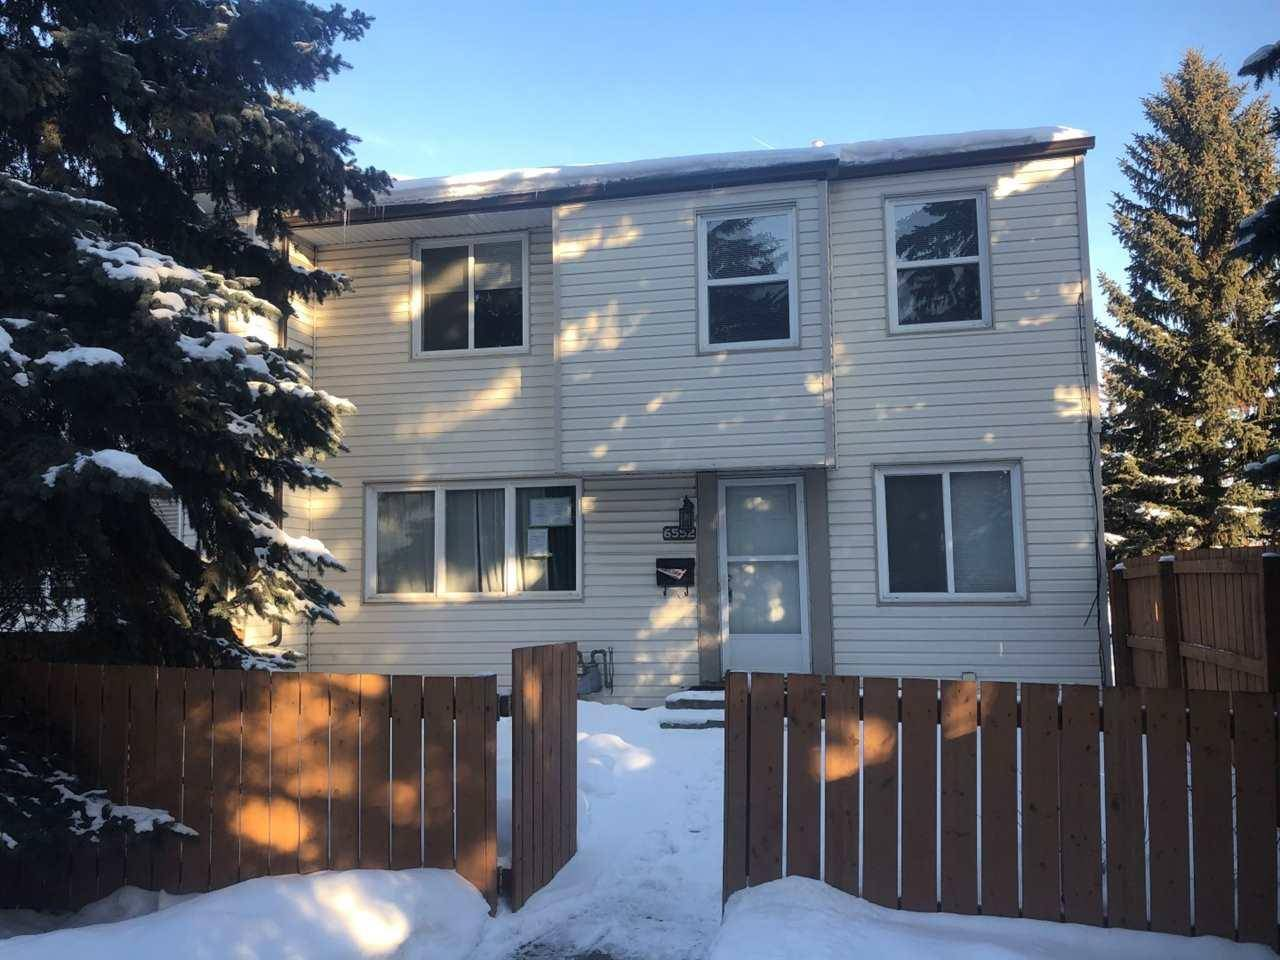 Townhouse for sale at 6552 178 St Nw Edmonton Alberta - MLS: E4188544